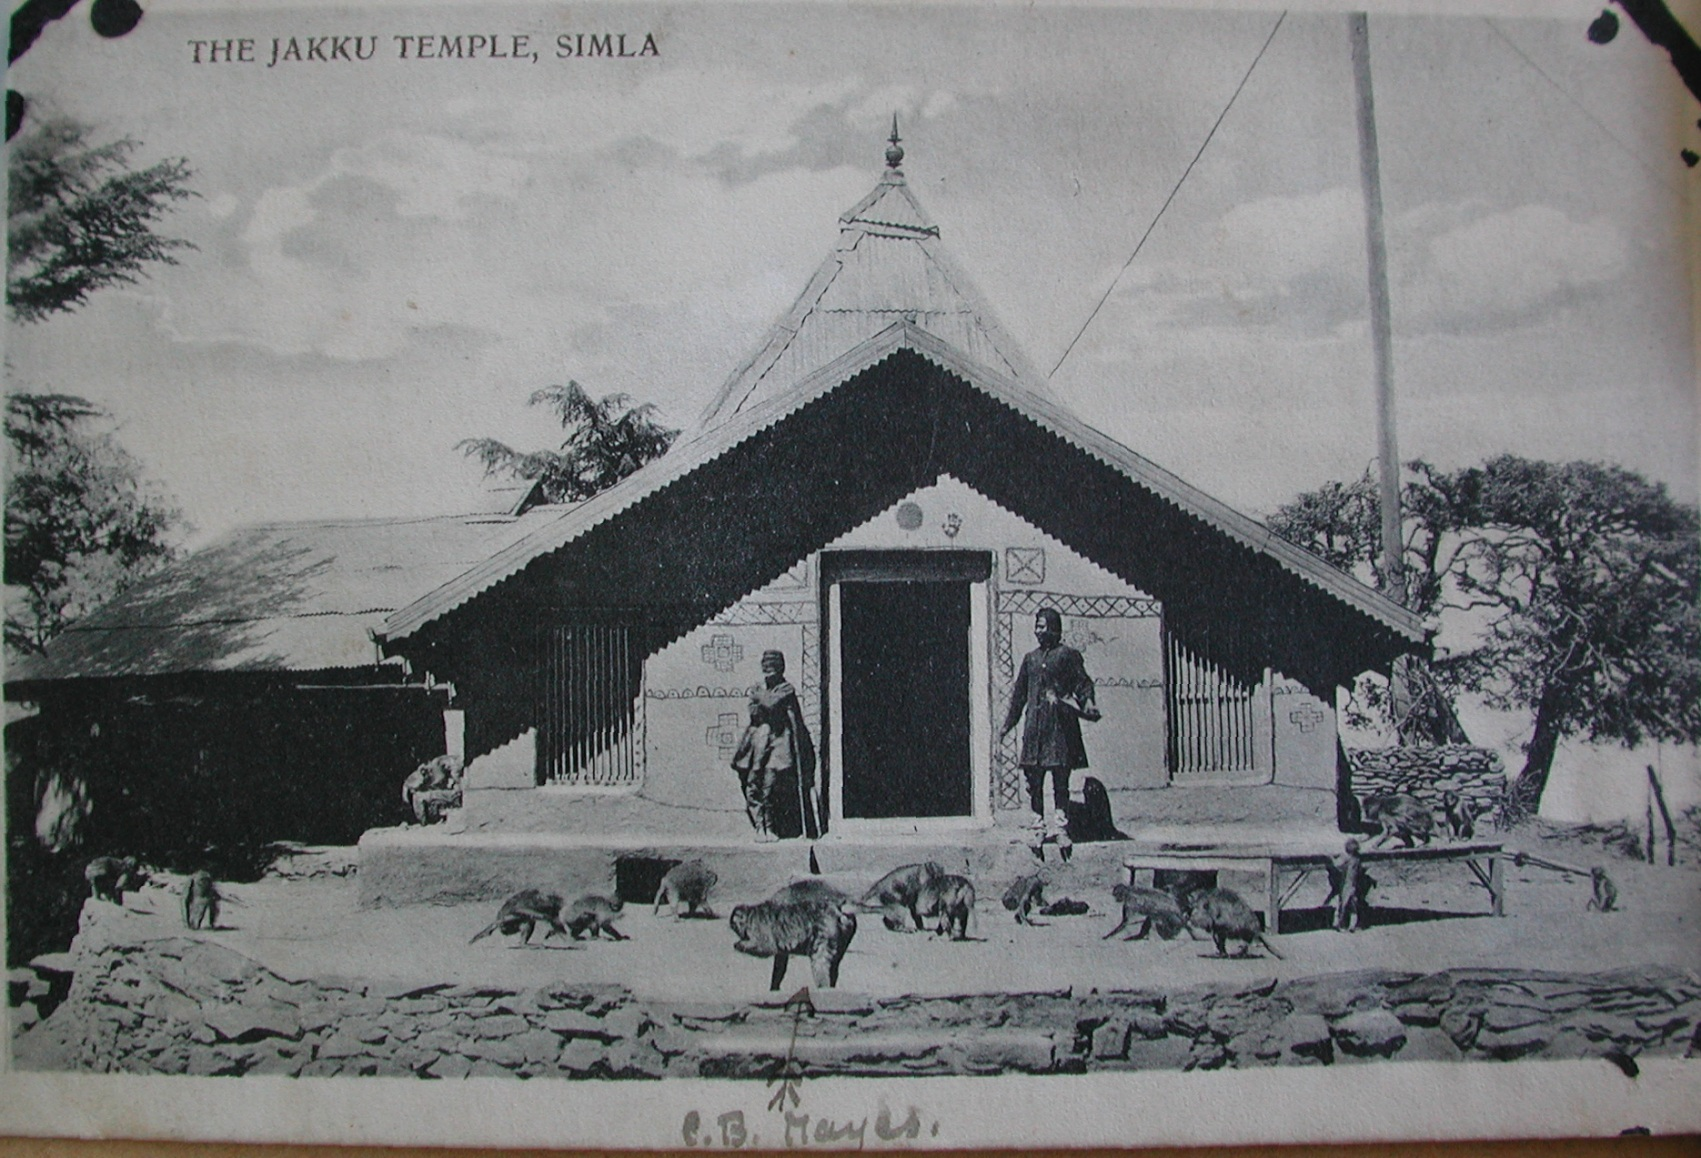 Jakhu Temple in 1910